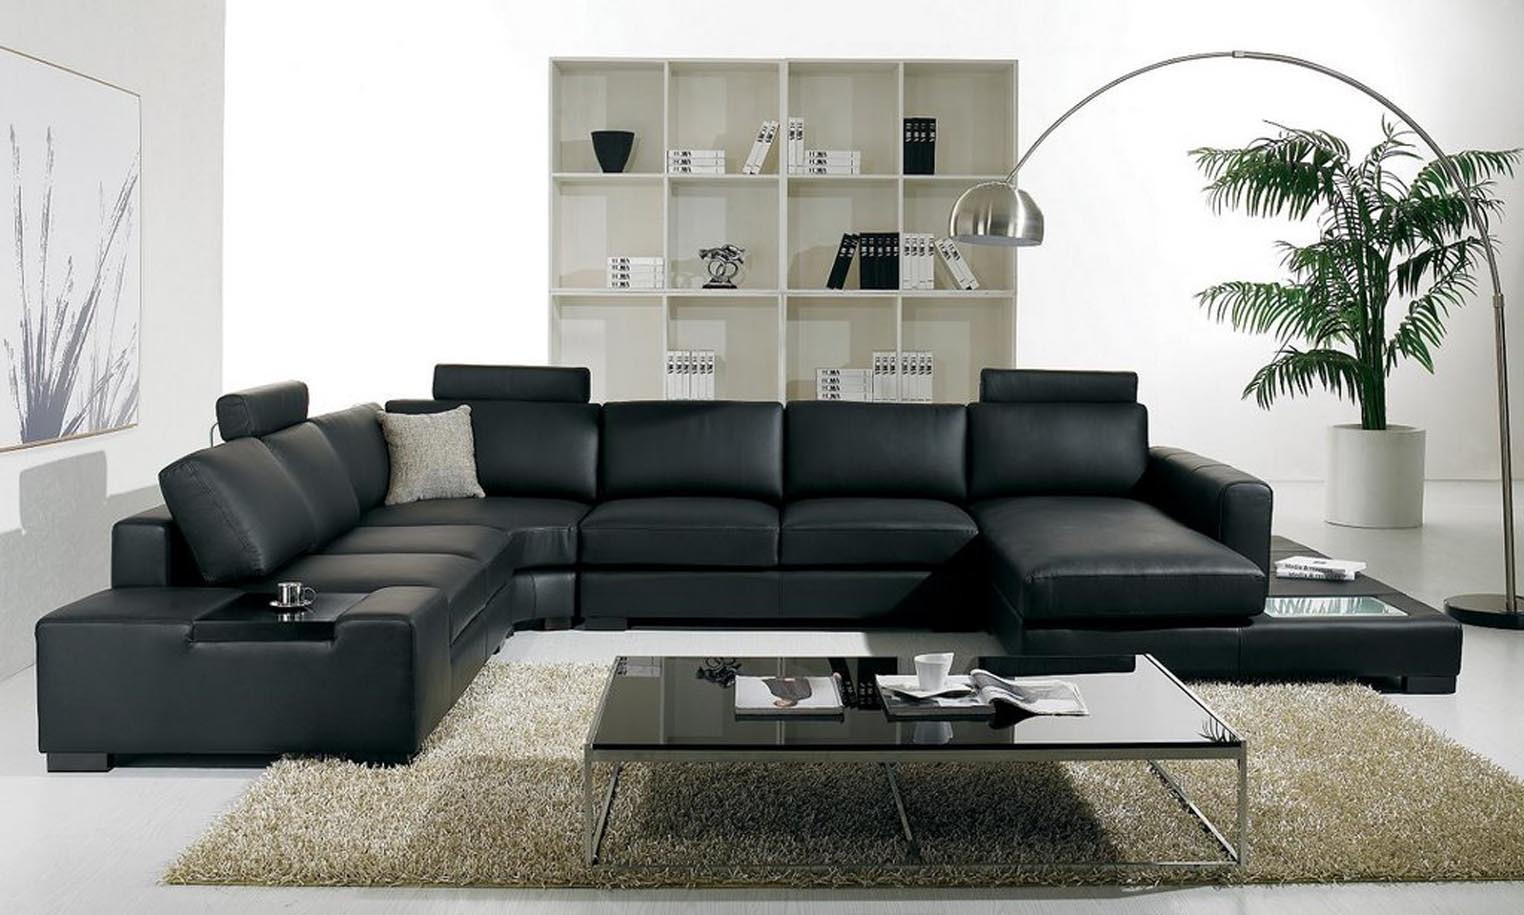 Black Living Room Designs Simple Interior Design Tips to Make Over Your Living Room